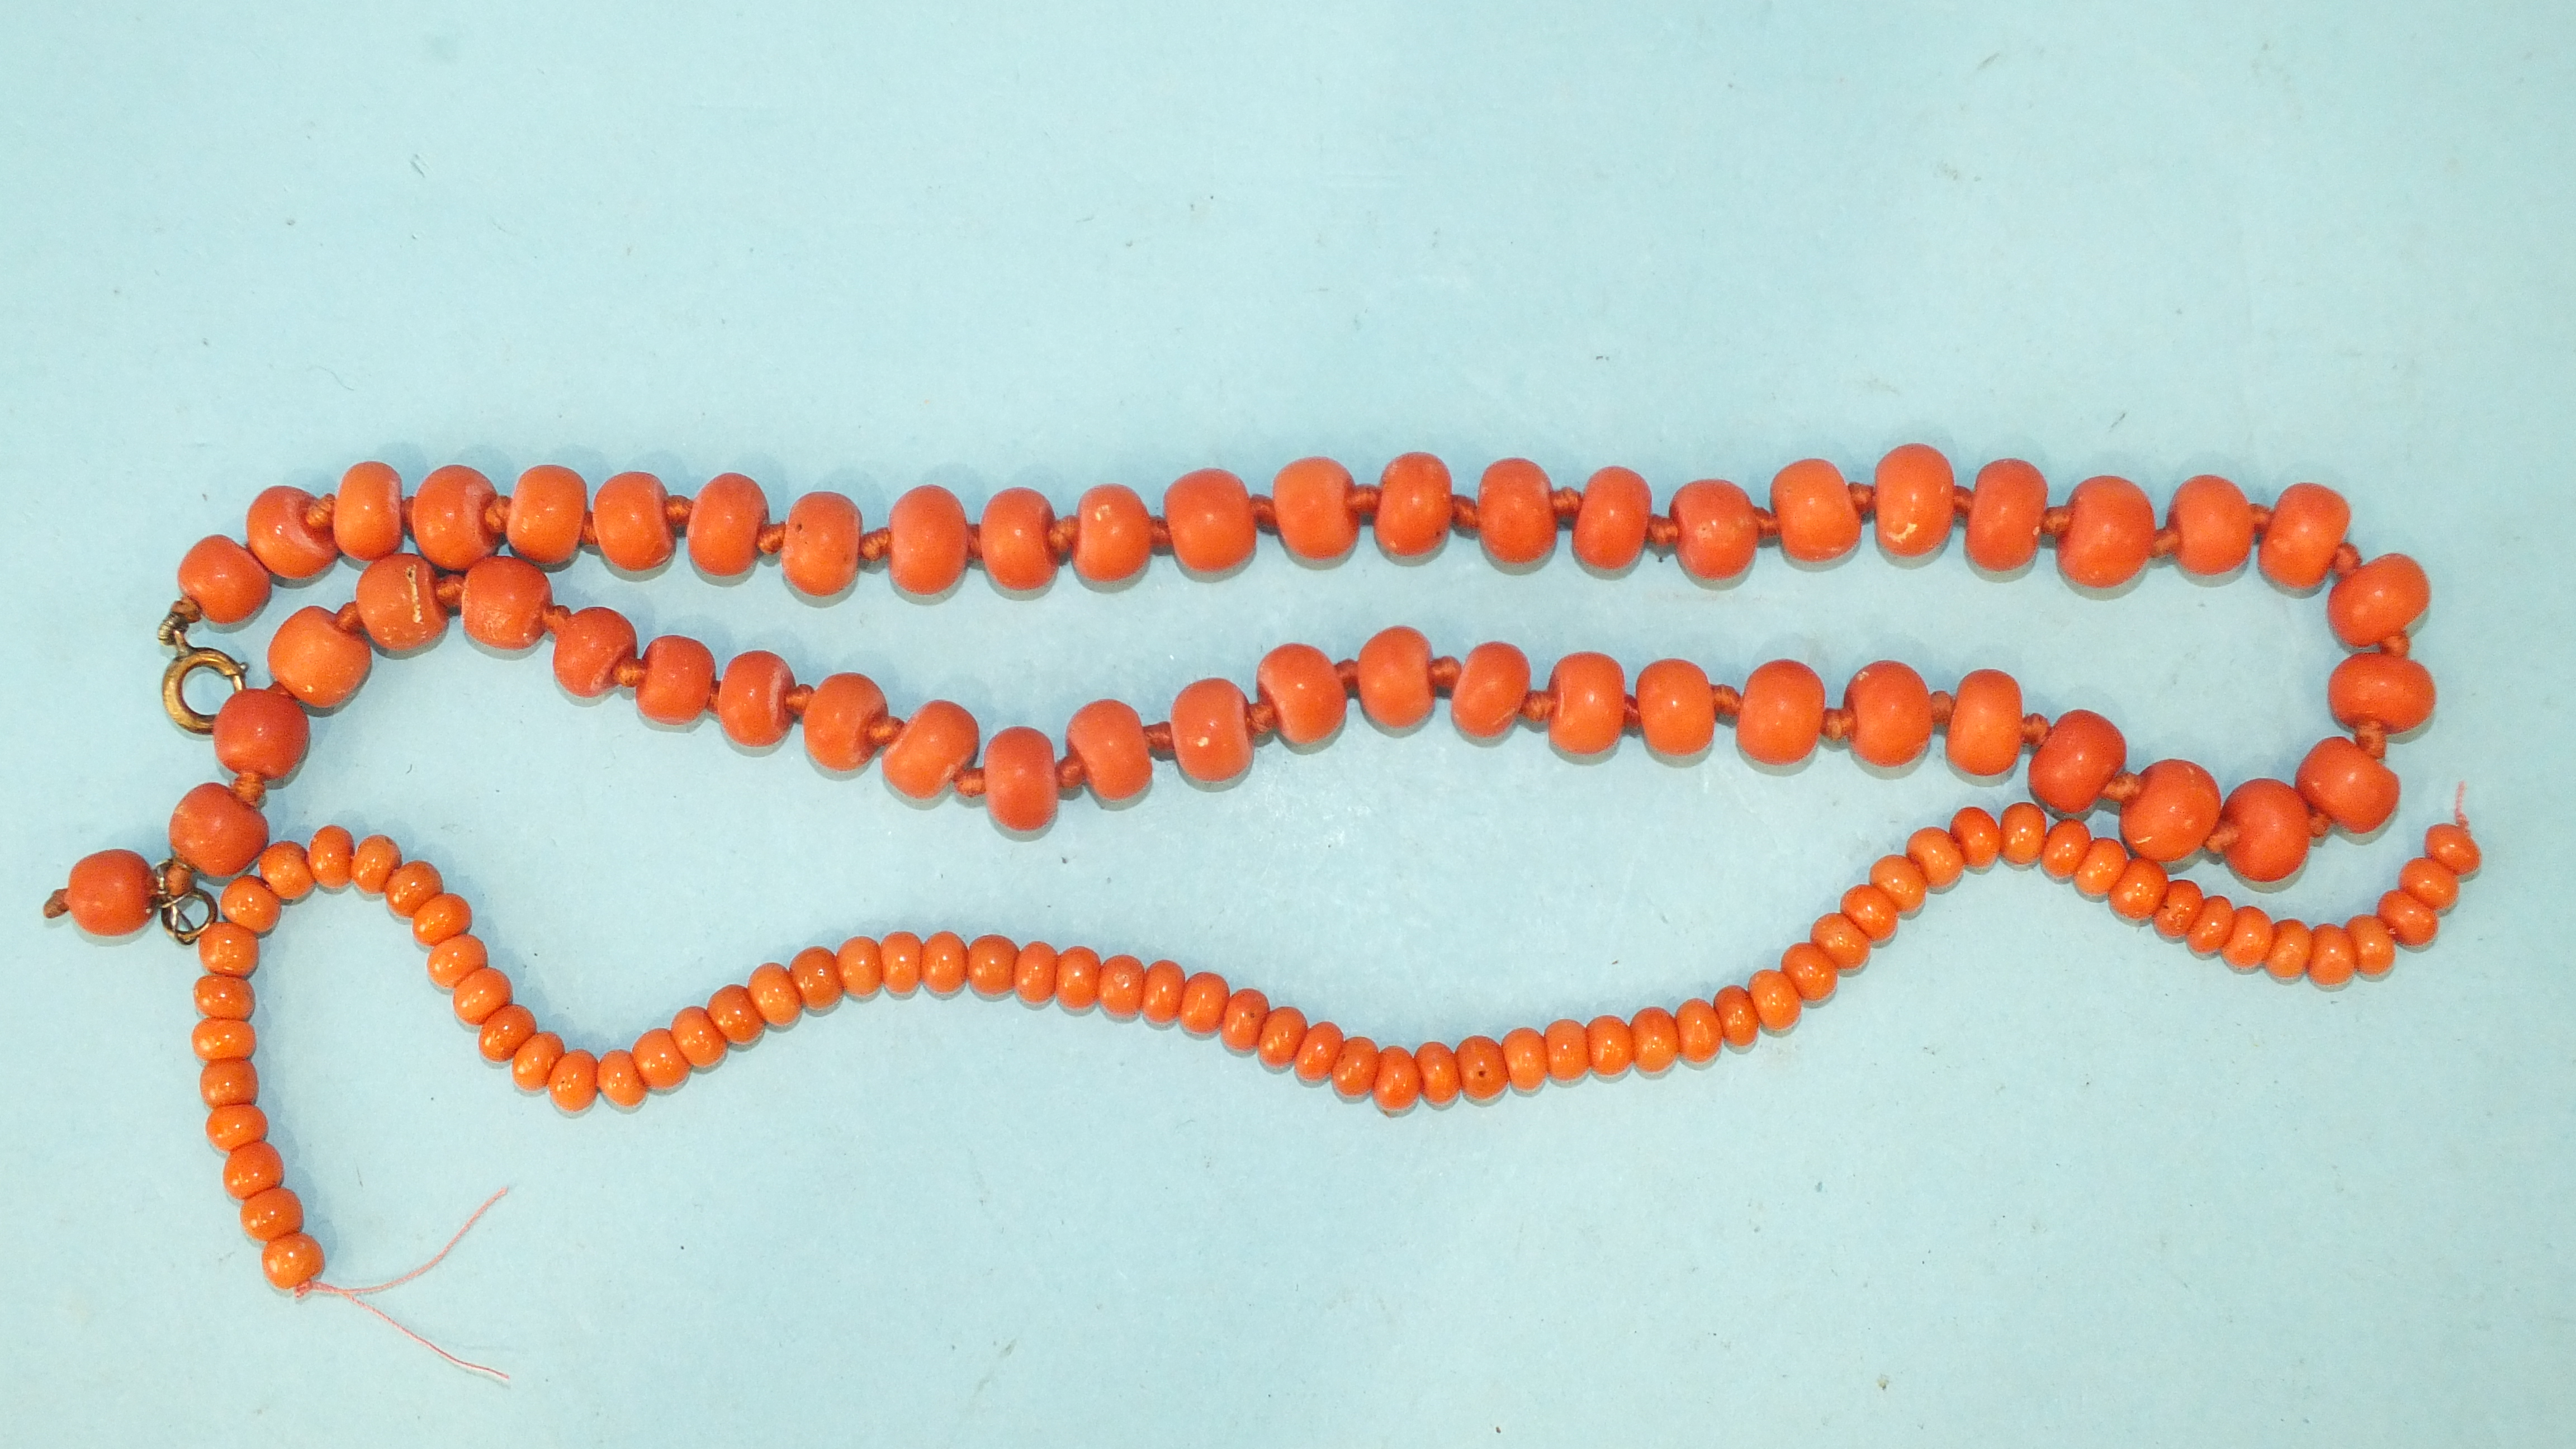 A necklace of fifty-one coral beads, 8-9mm diameter approximately, 45cm long, 45g and a string of